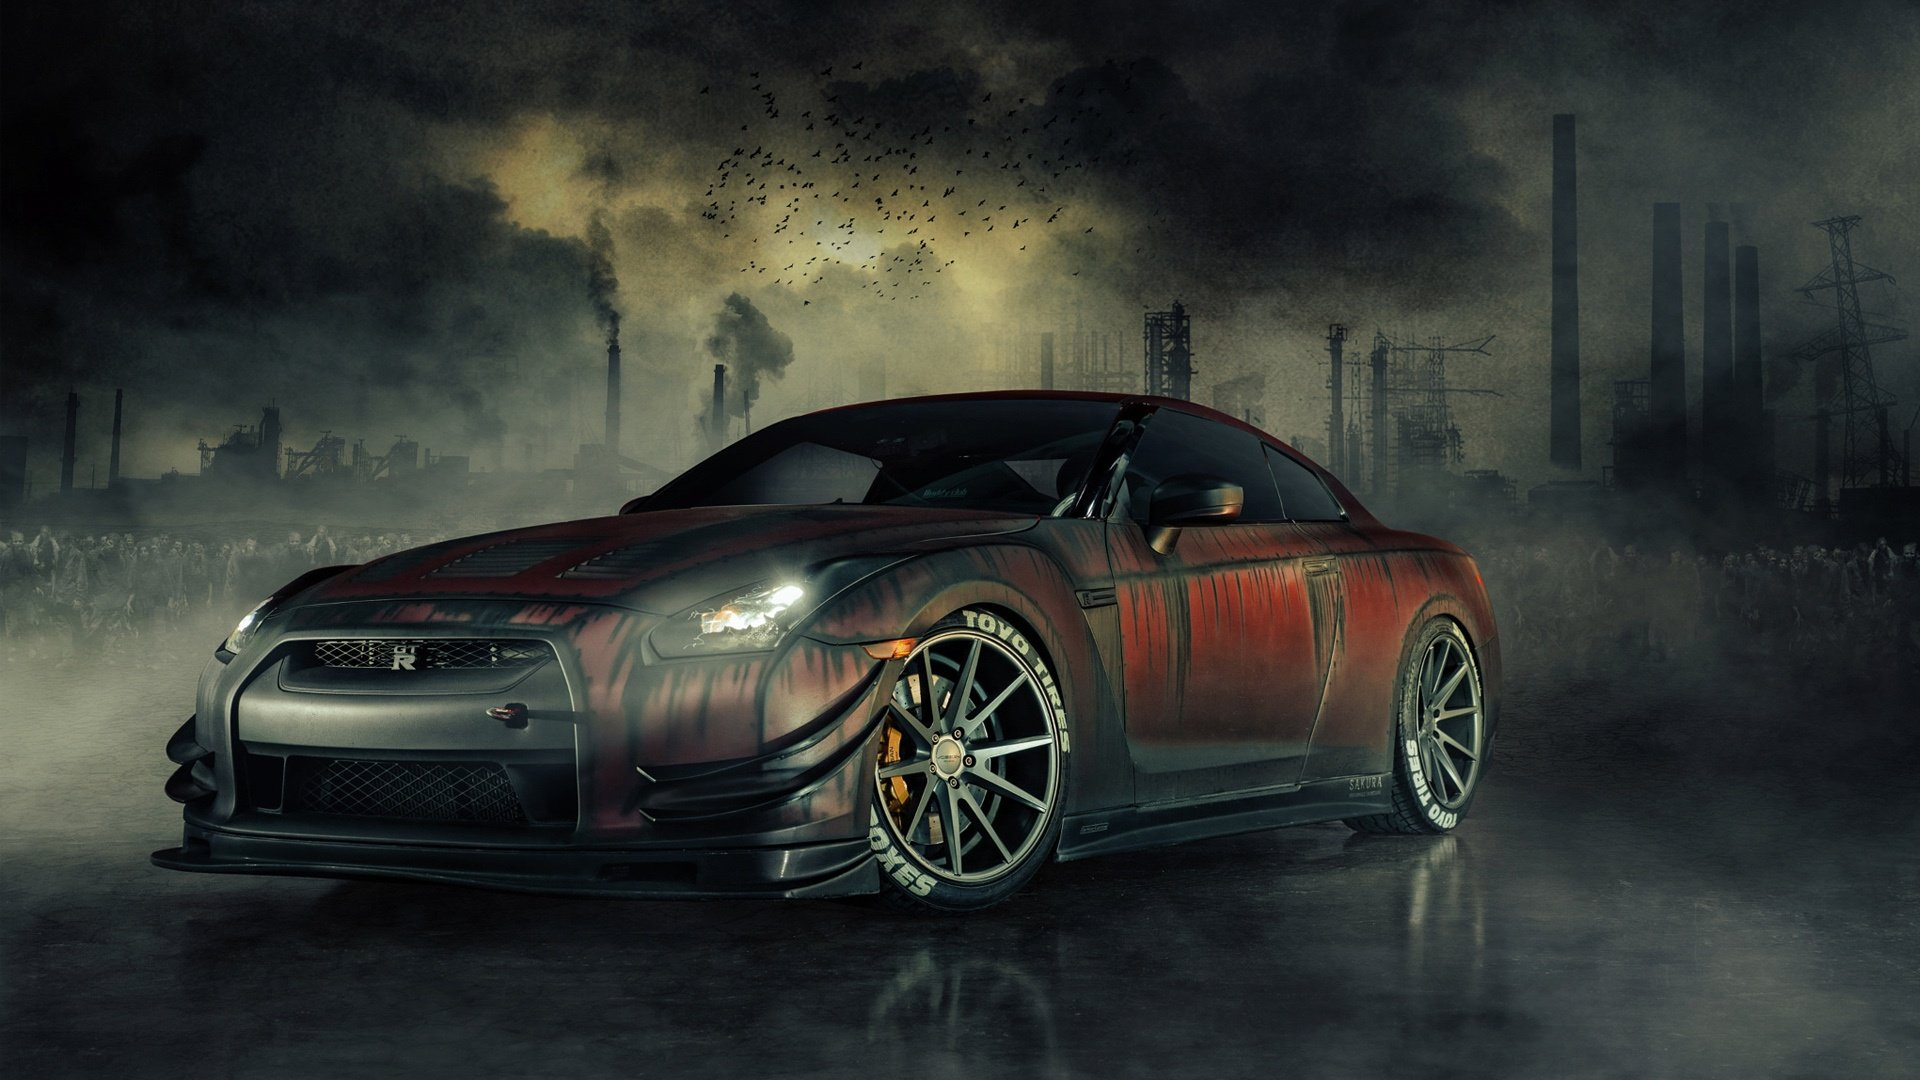 zombie wallpapers photos and desktop backgrounds up to 8k